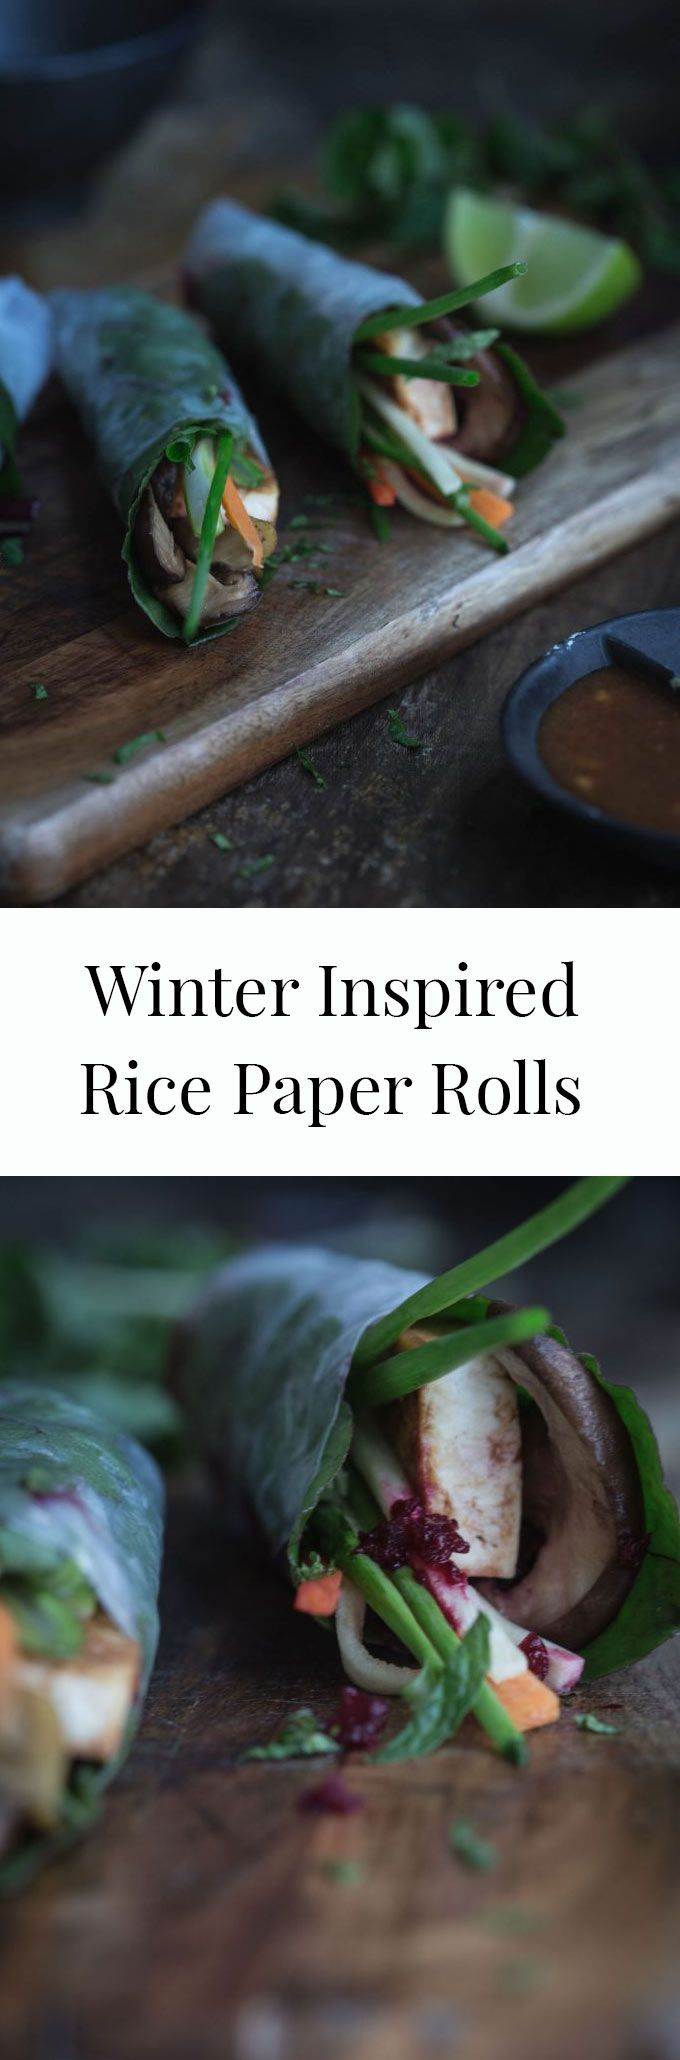 With a vibrant beetroot paste, earthy mushrooms and hoisin-infused tofu, these Winter Inspired Rice Paper Rolls are deliciously nutritious and quick.